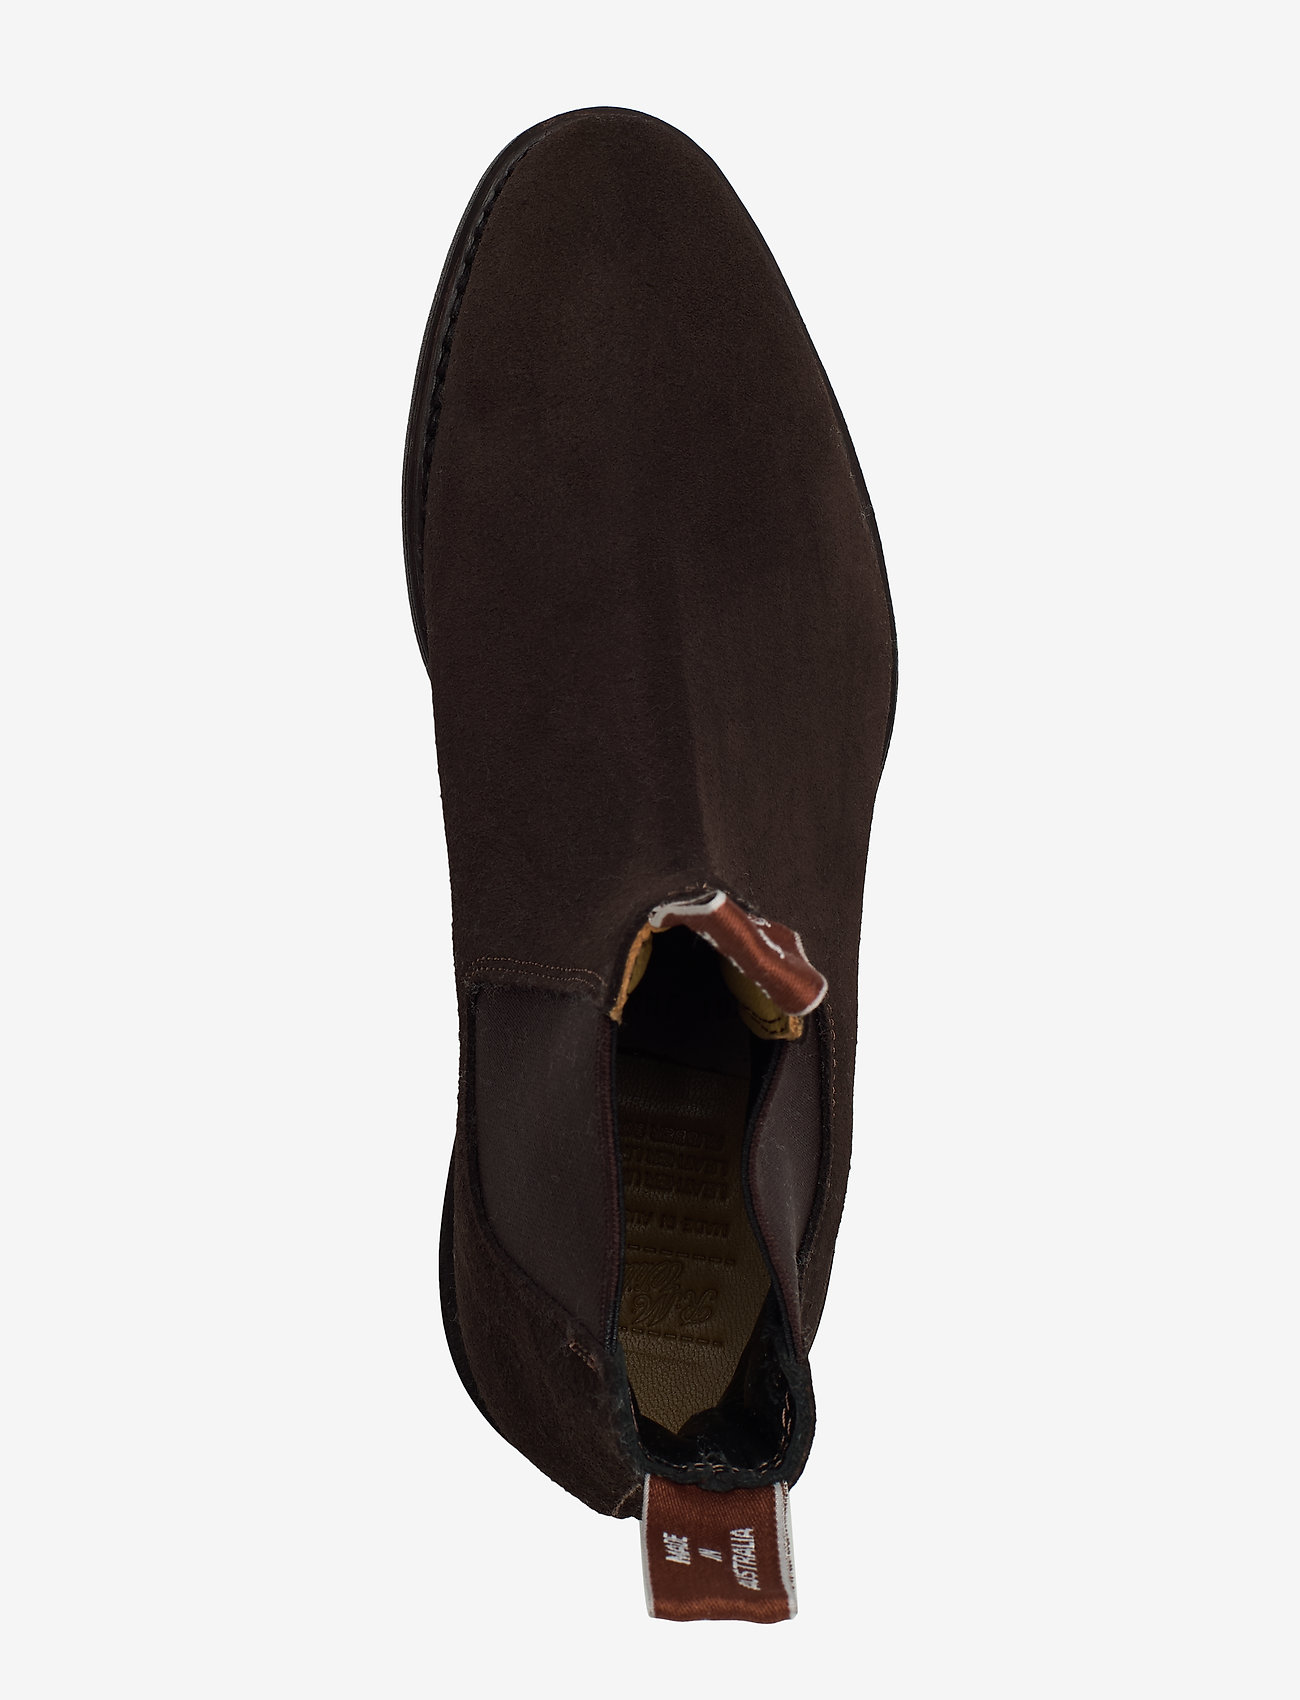 R.M. Williams Macquarie G - Stiefel CHOCOLATE - Schuhe Billige